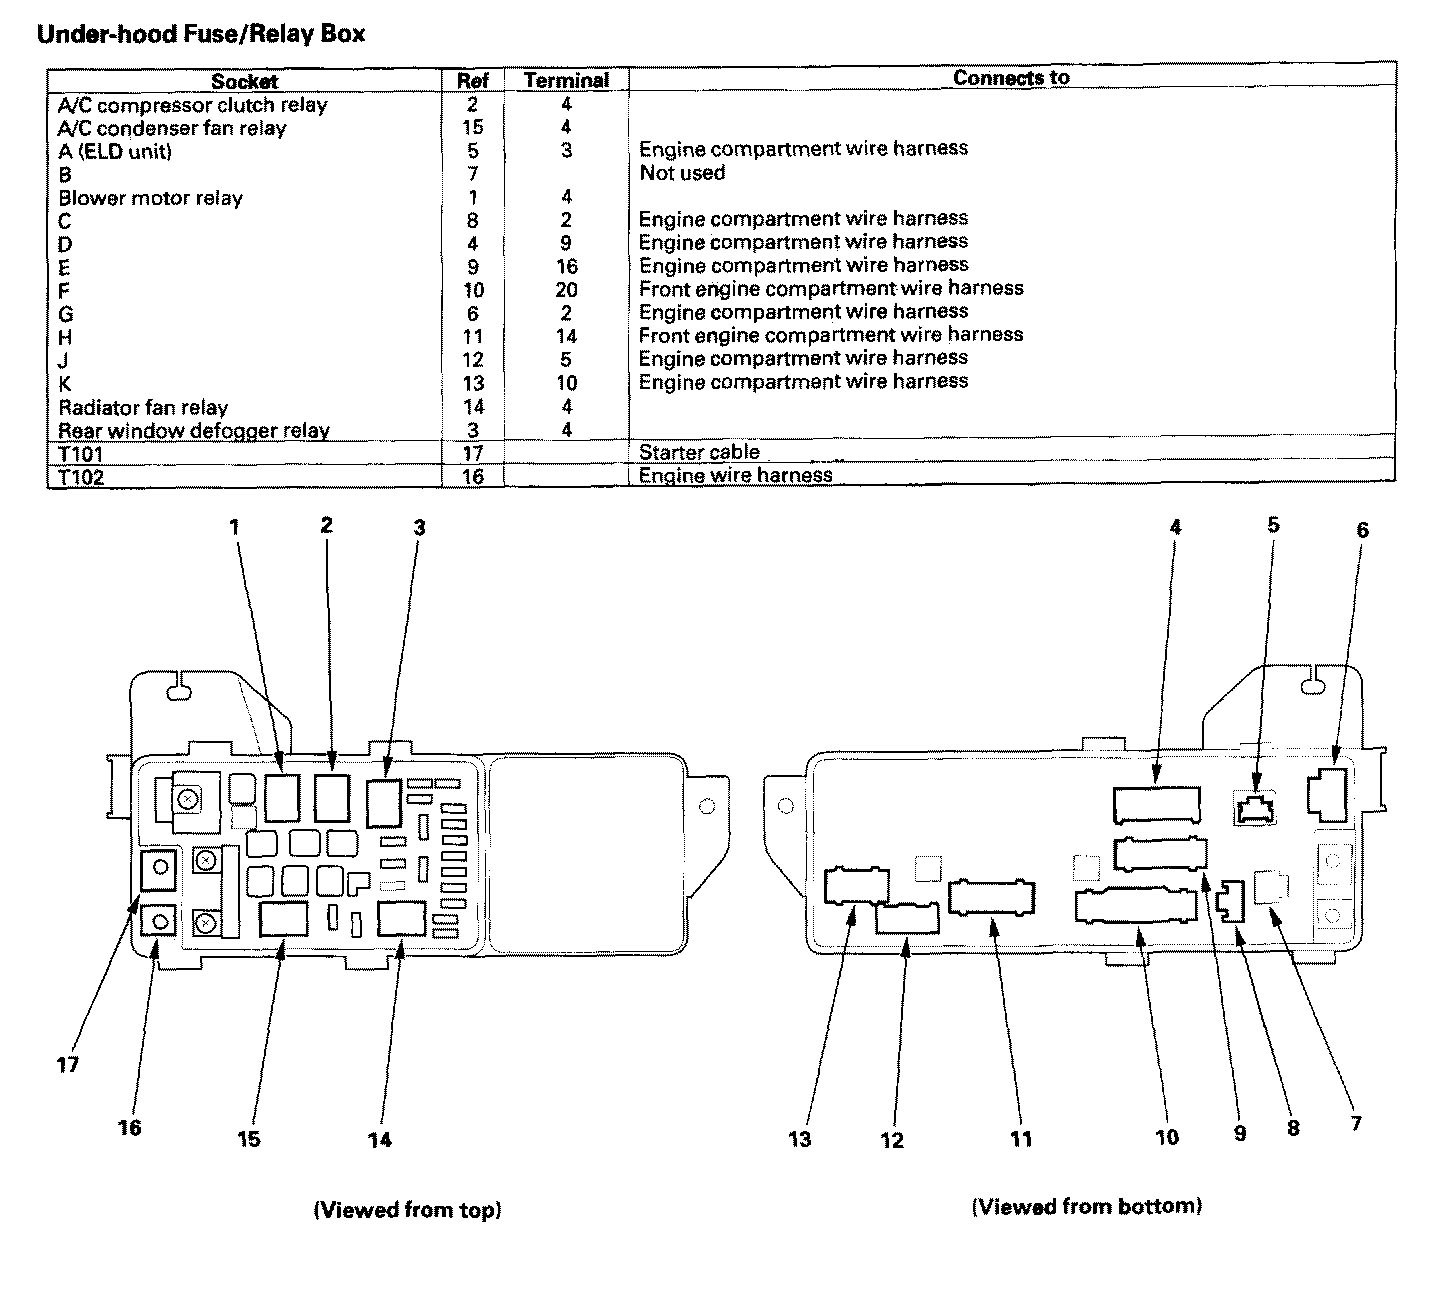 2006 Mack Chn613 Fuse Box Diagram Trusted Schematics 1997 Ford E 250 For Panel Heater Blower Acura Tl Opinions About Wiring U2022 2005 F